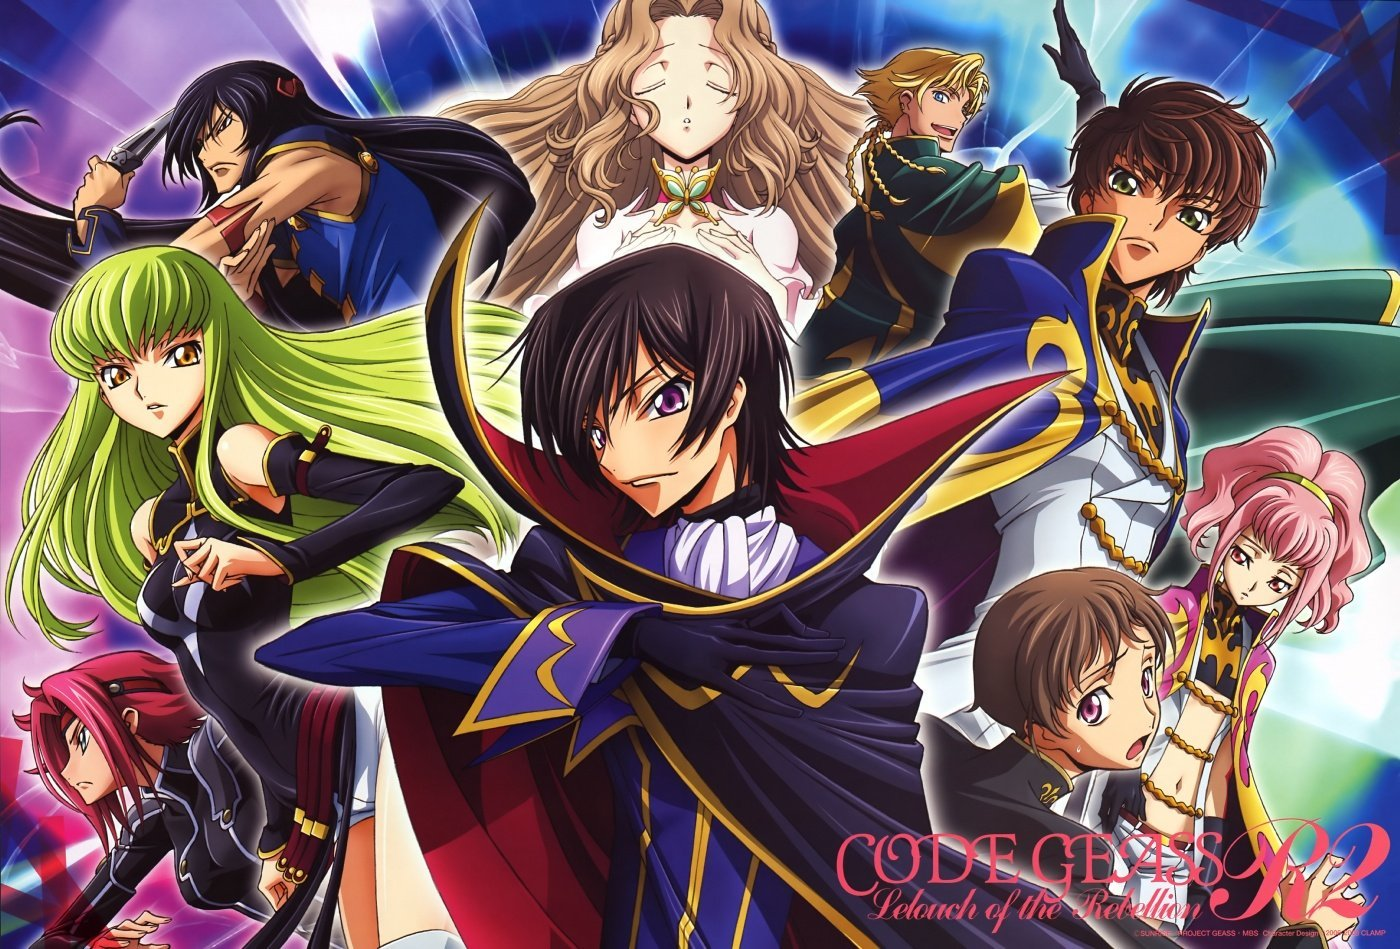 code geass - number one mind game anime